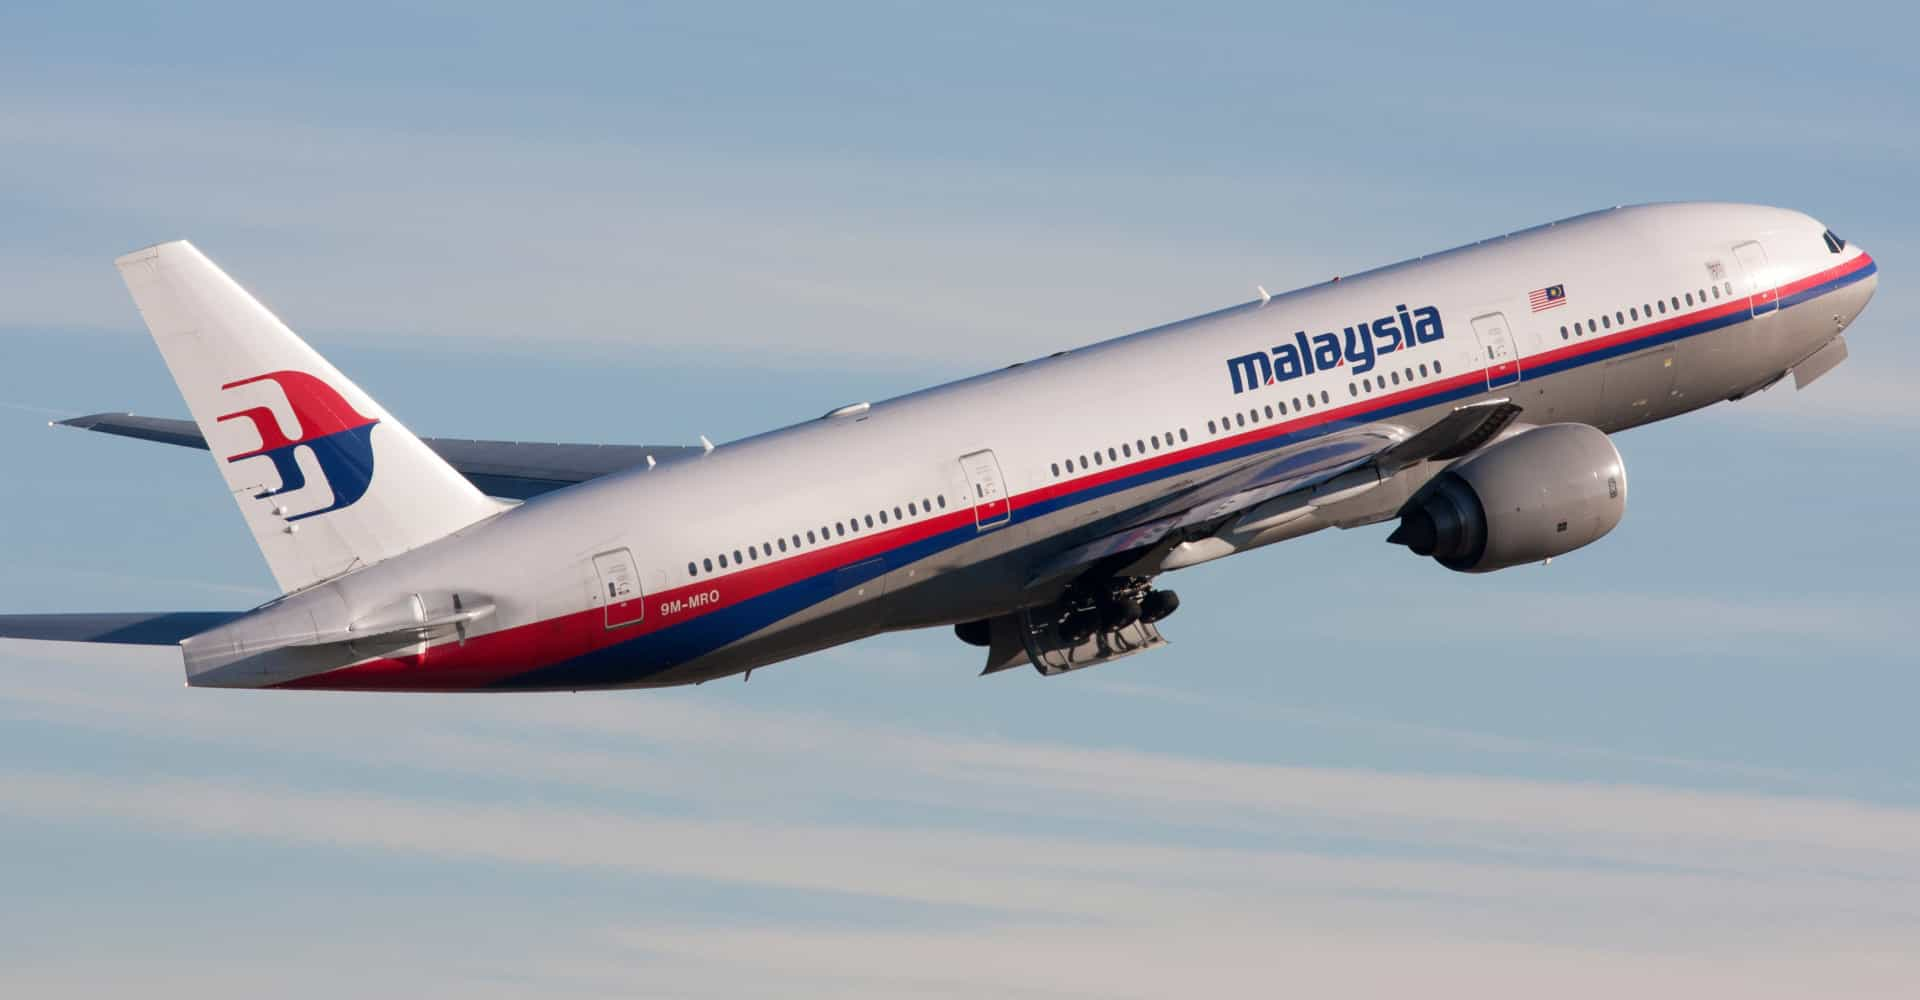 The mystery surrounding the missing Malaysia Airlines plane